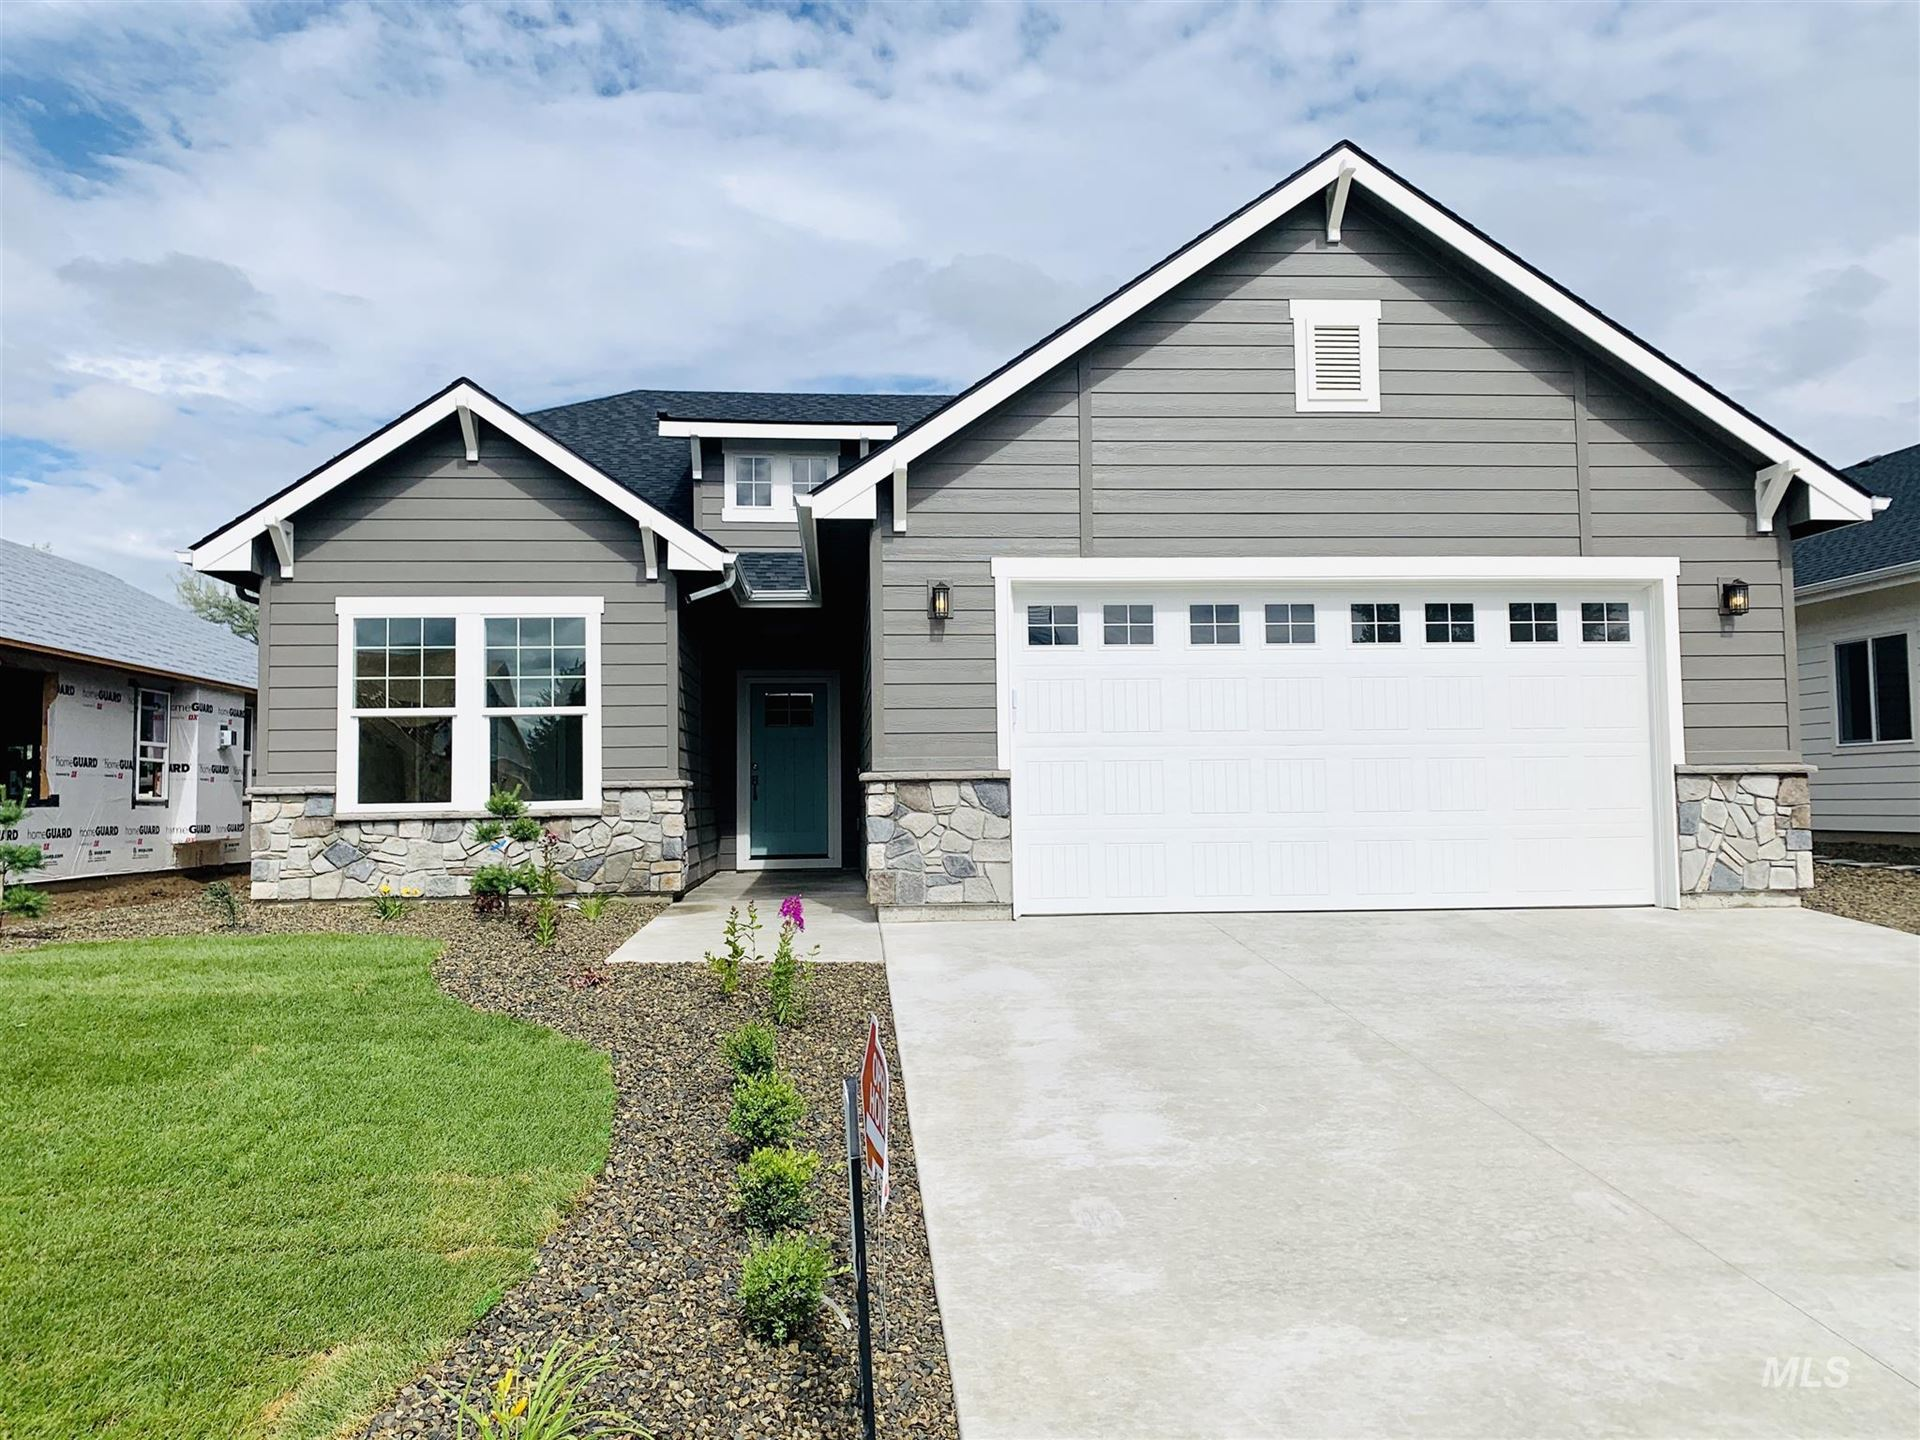 2213 Sunset Ave, Caldwell, ID 83605 - MLS#: 98770379